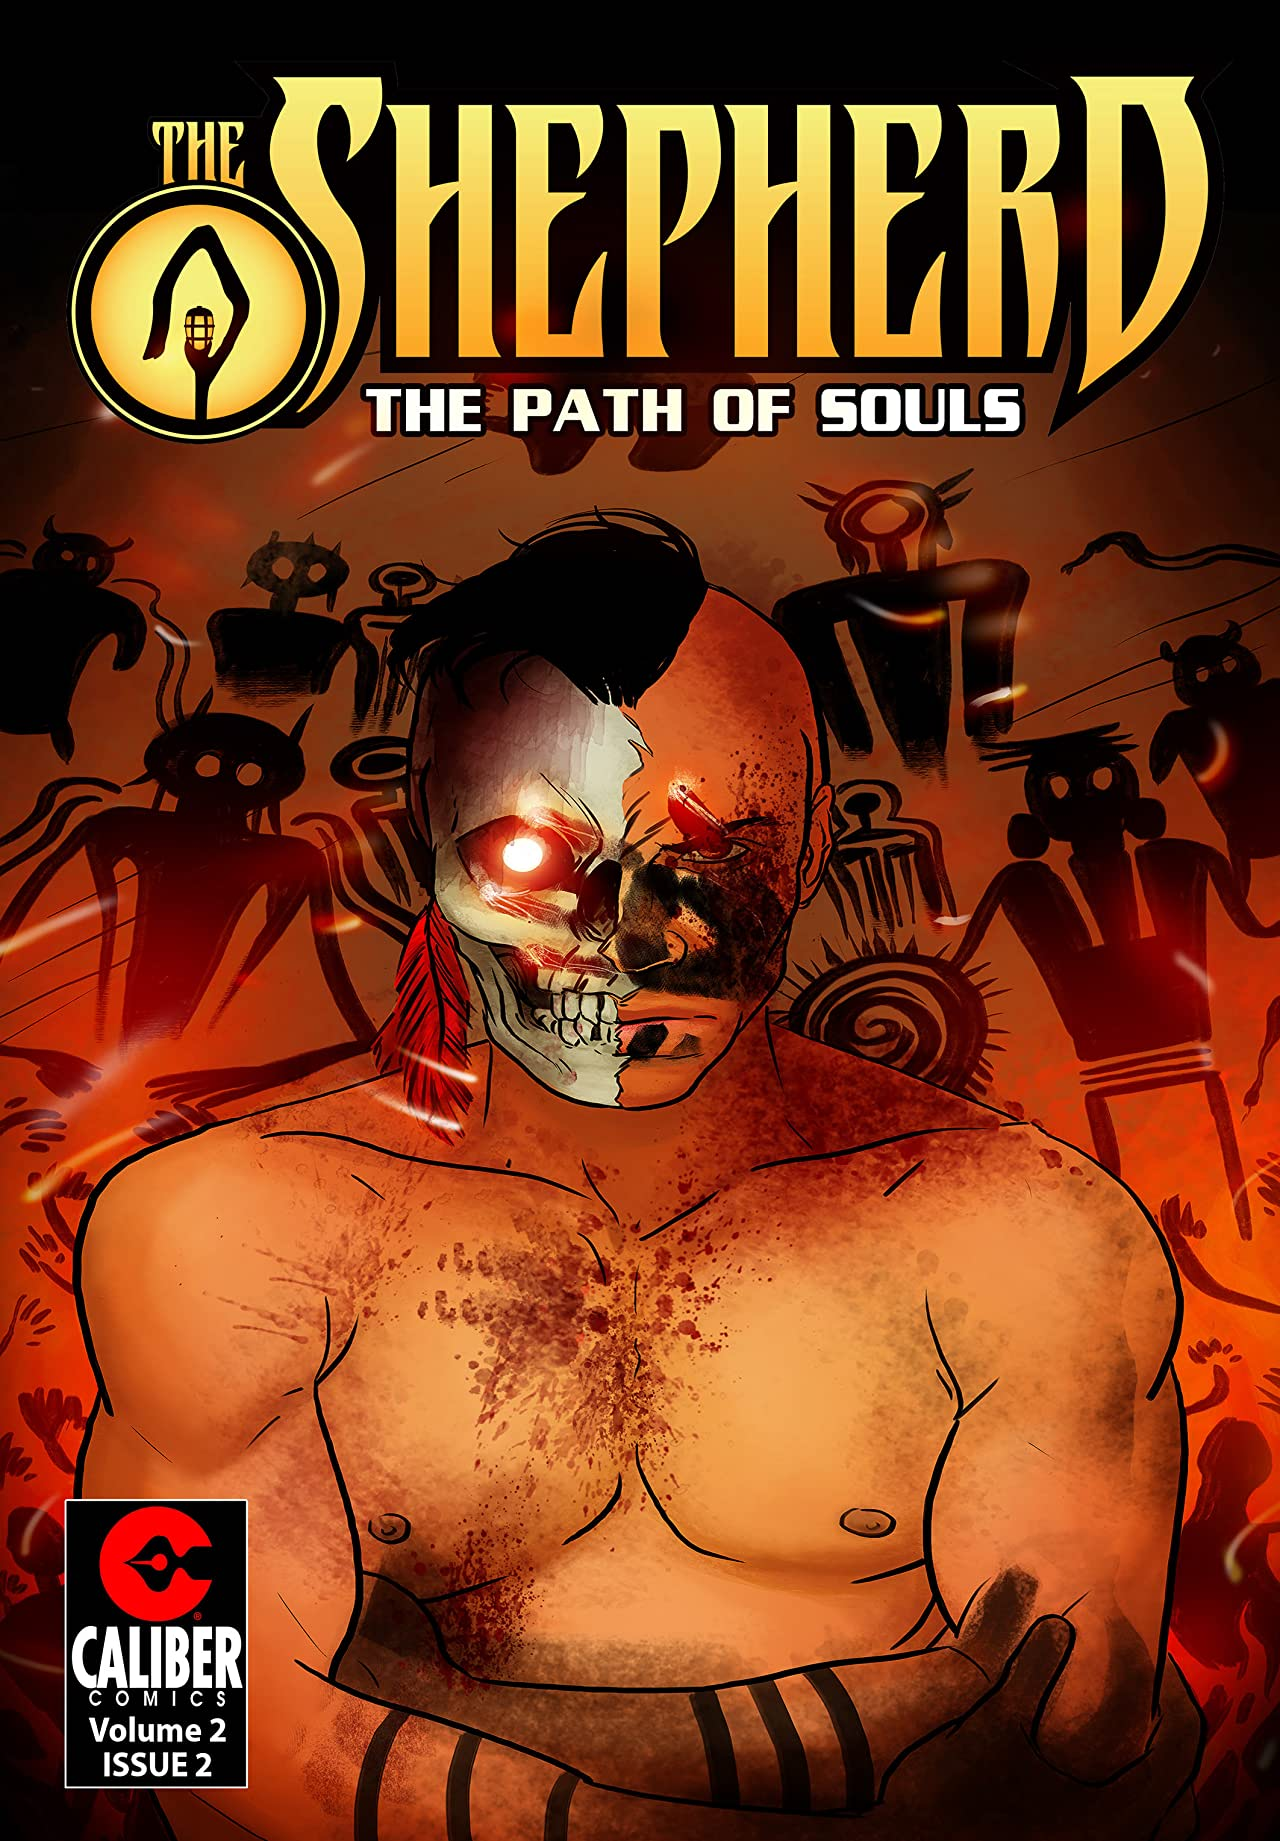 The Shepherd: Vol. 2: The Path of Souls #2